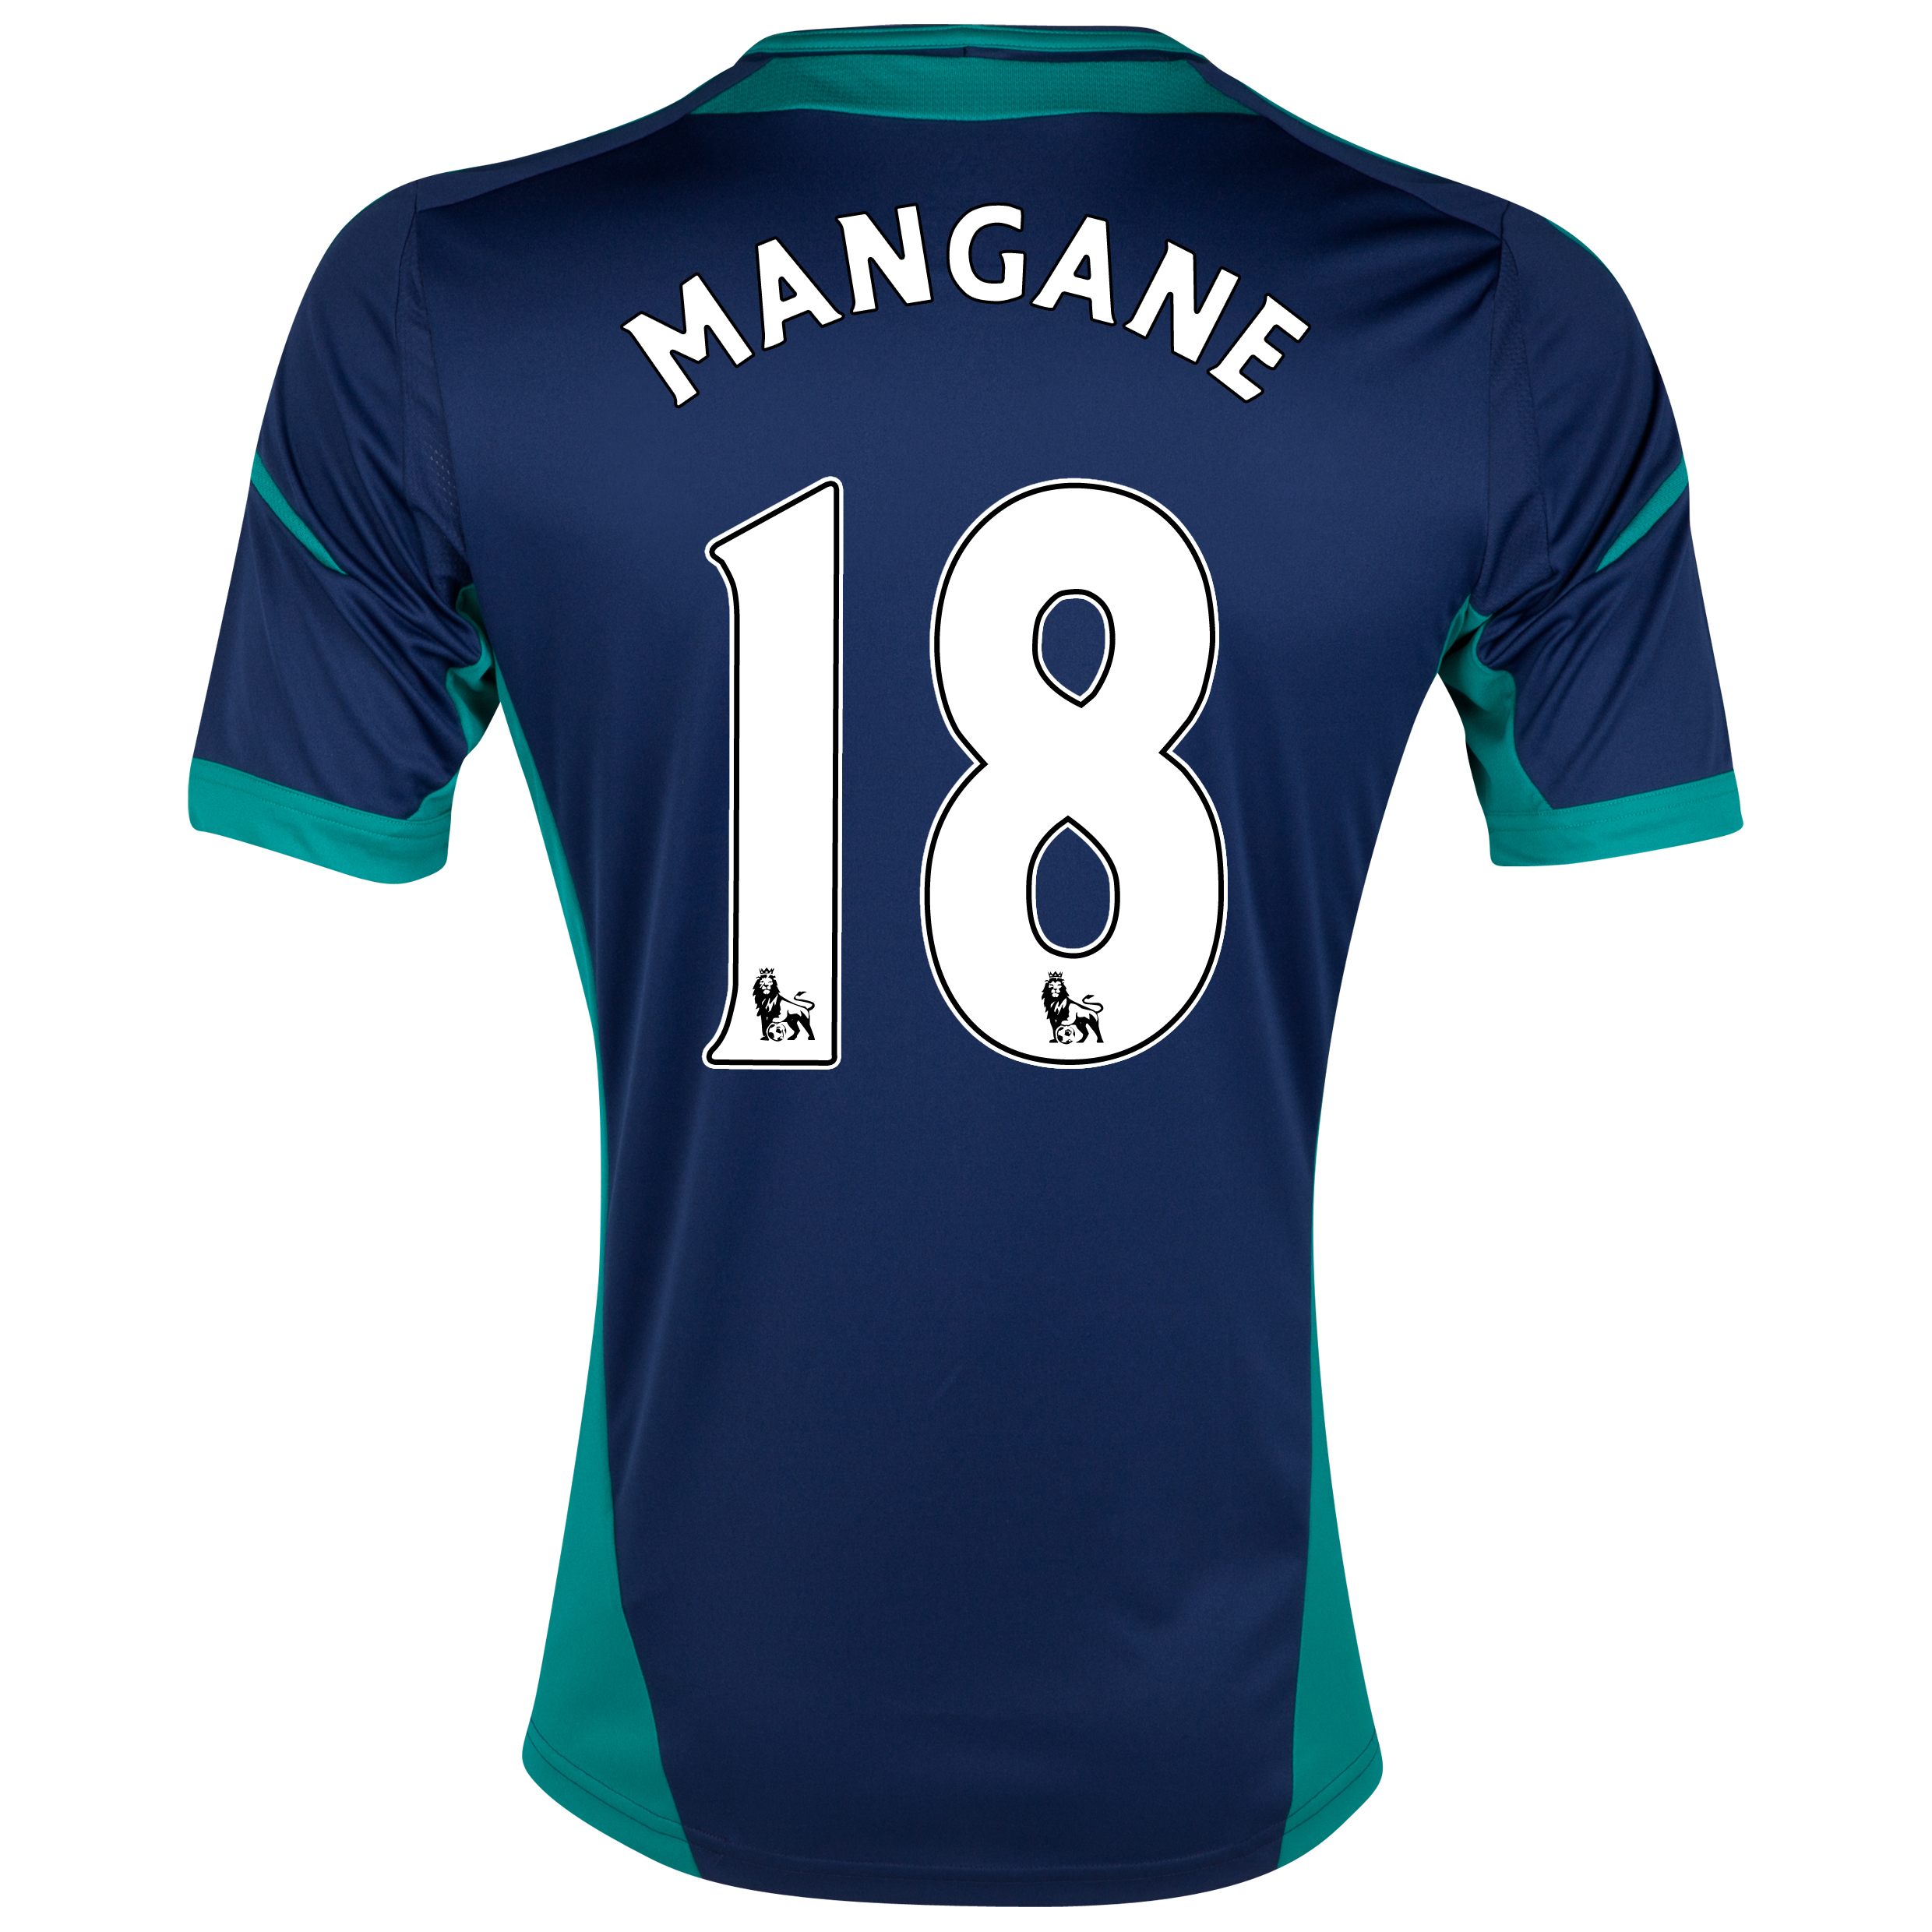 Sunderland Away Shirt 2012/13 with Mangane 18 printing